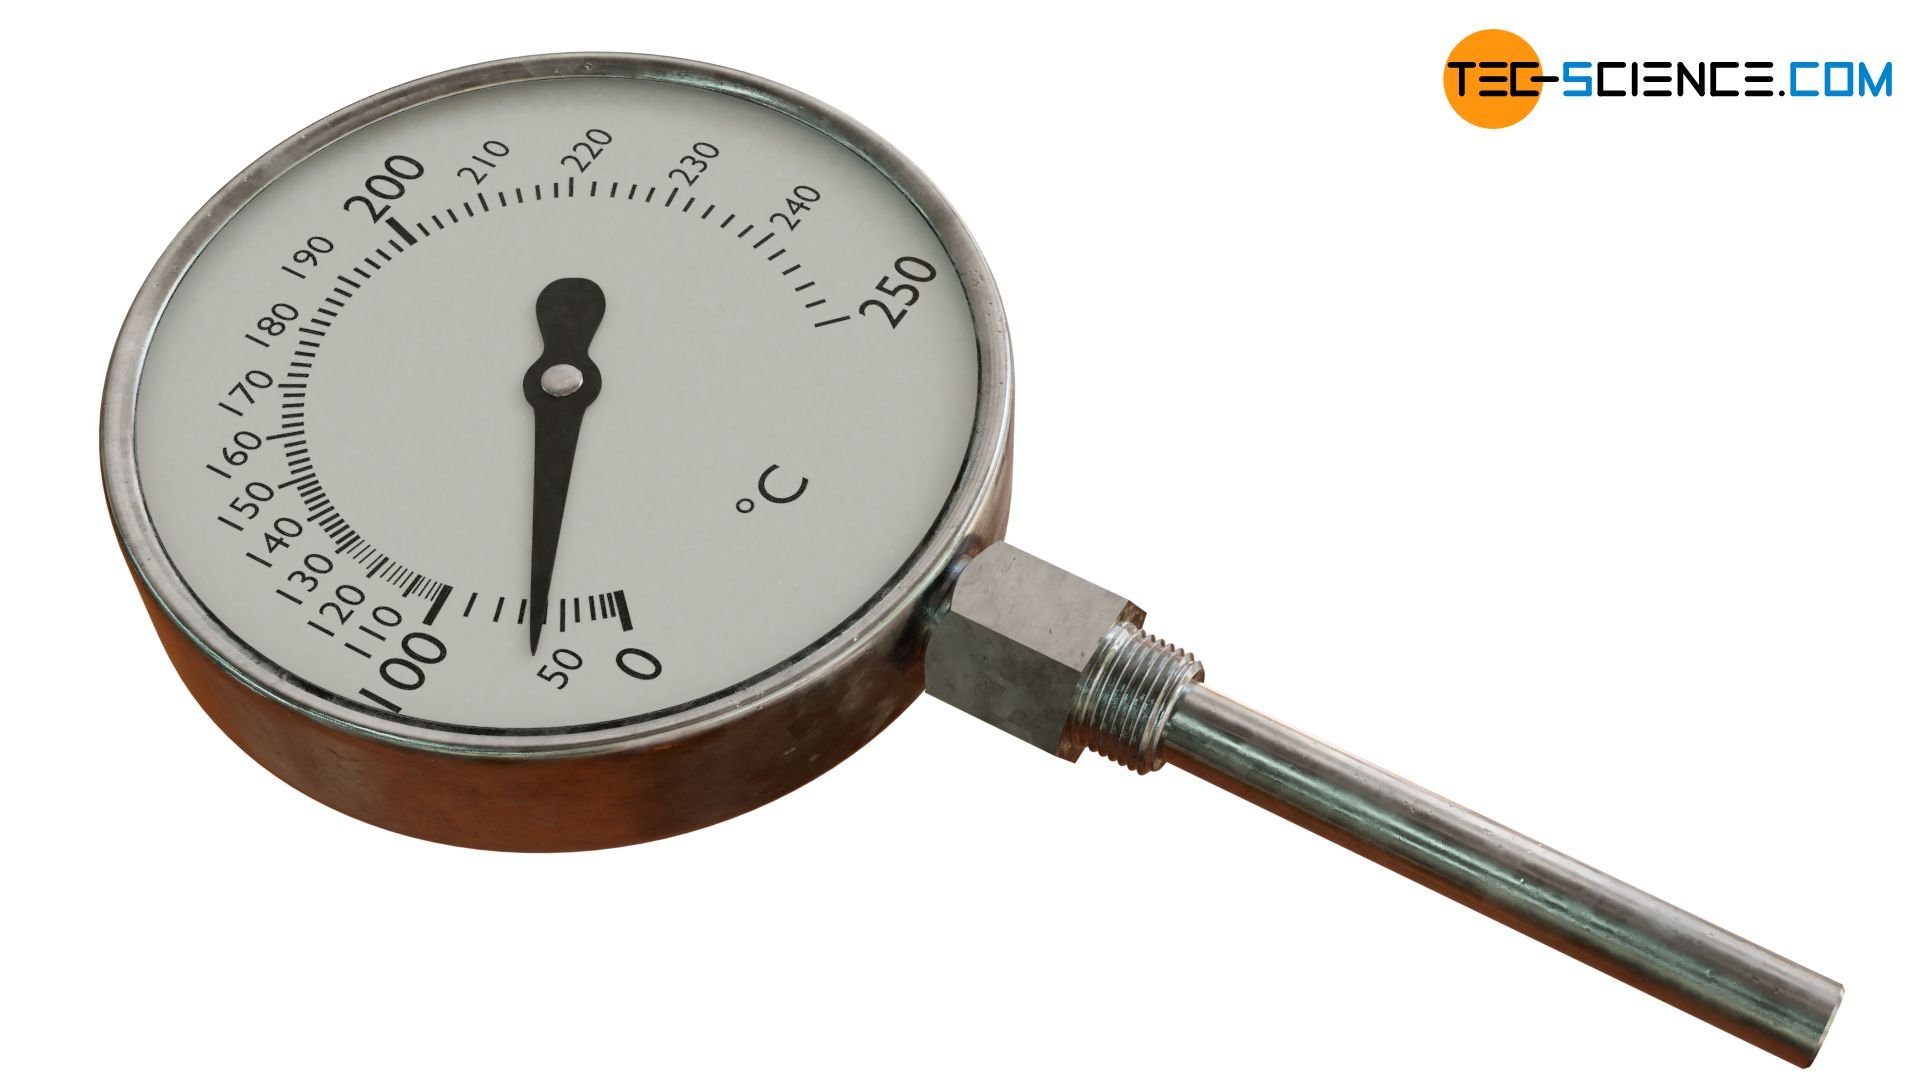 Vapour filled thermometer (vapour-in-metal thermometer)